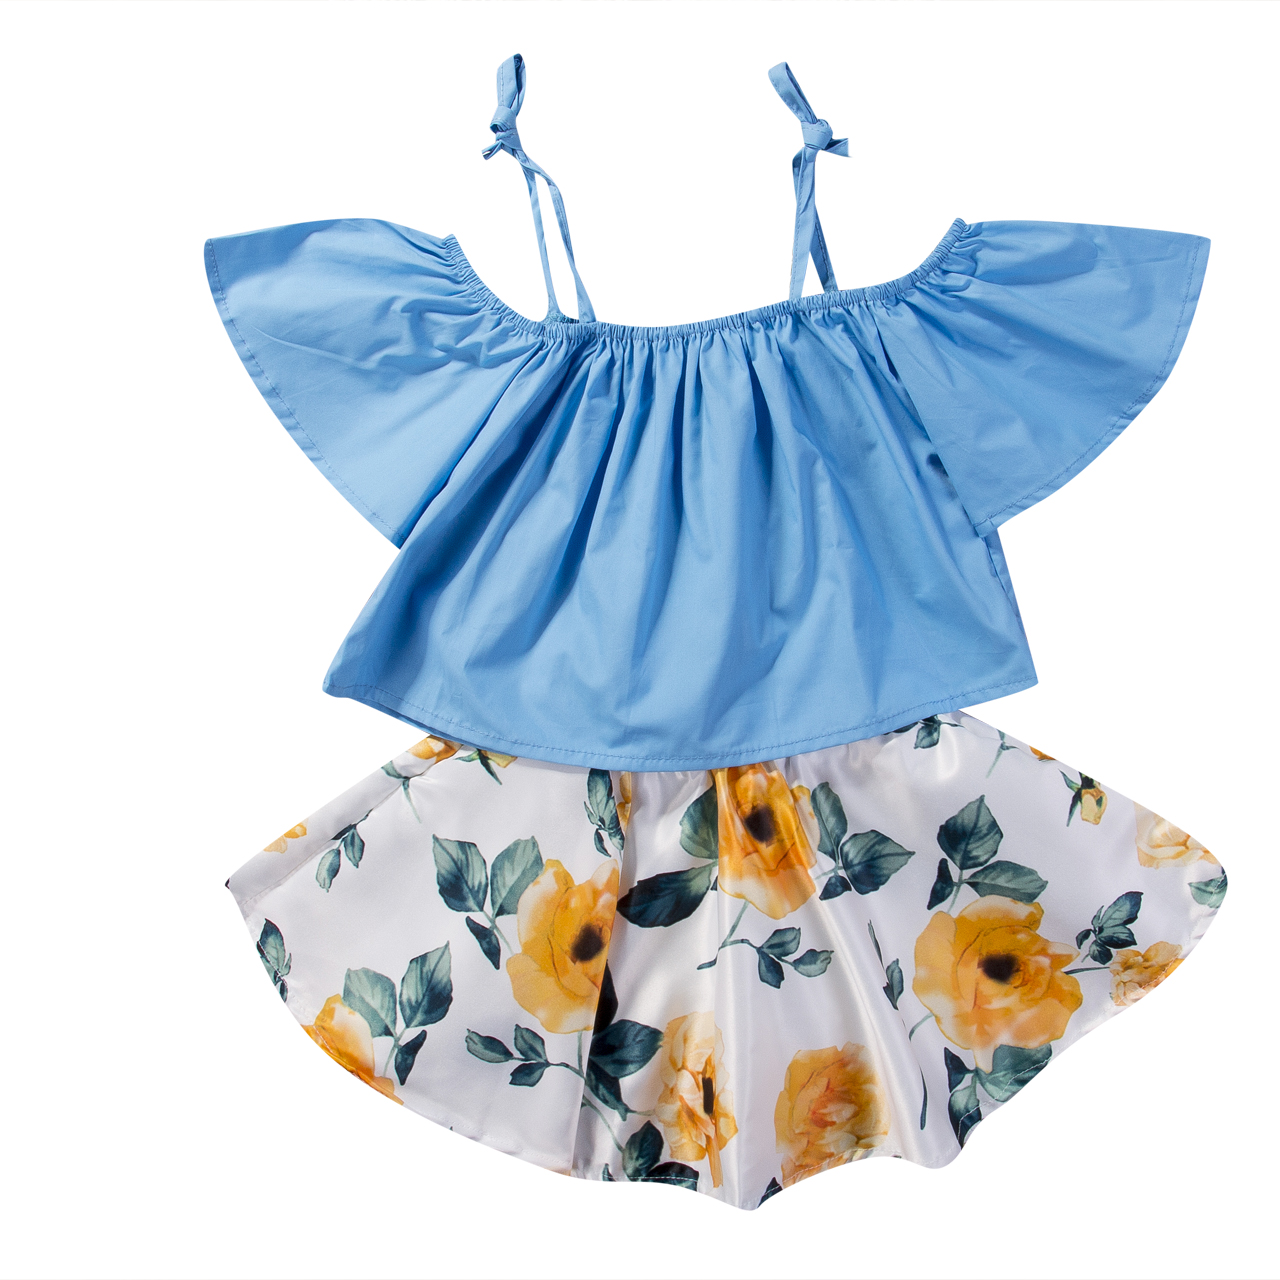 3dcb165702 Fashion Kids Baby Girls Off Shoulder Floral Tops Skirt Dress Outfits Clothes  US Baby & Toddler Clothing